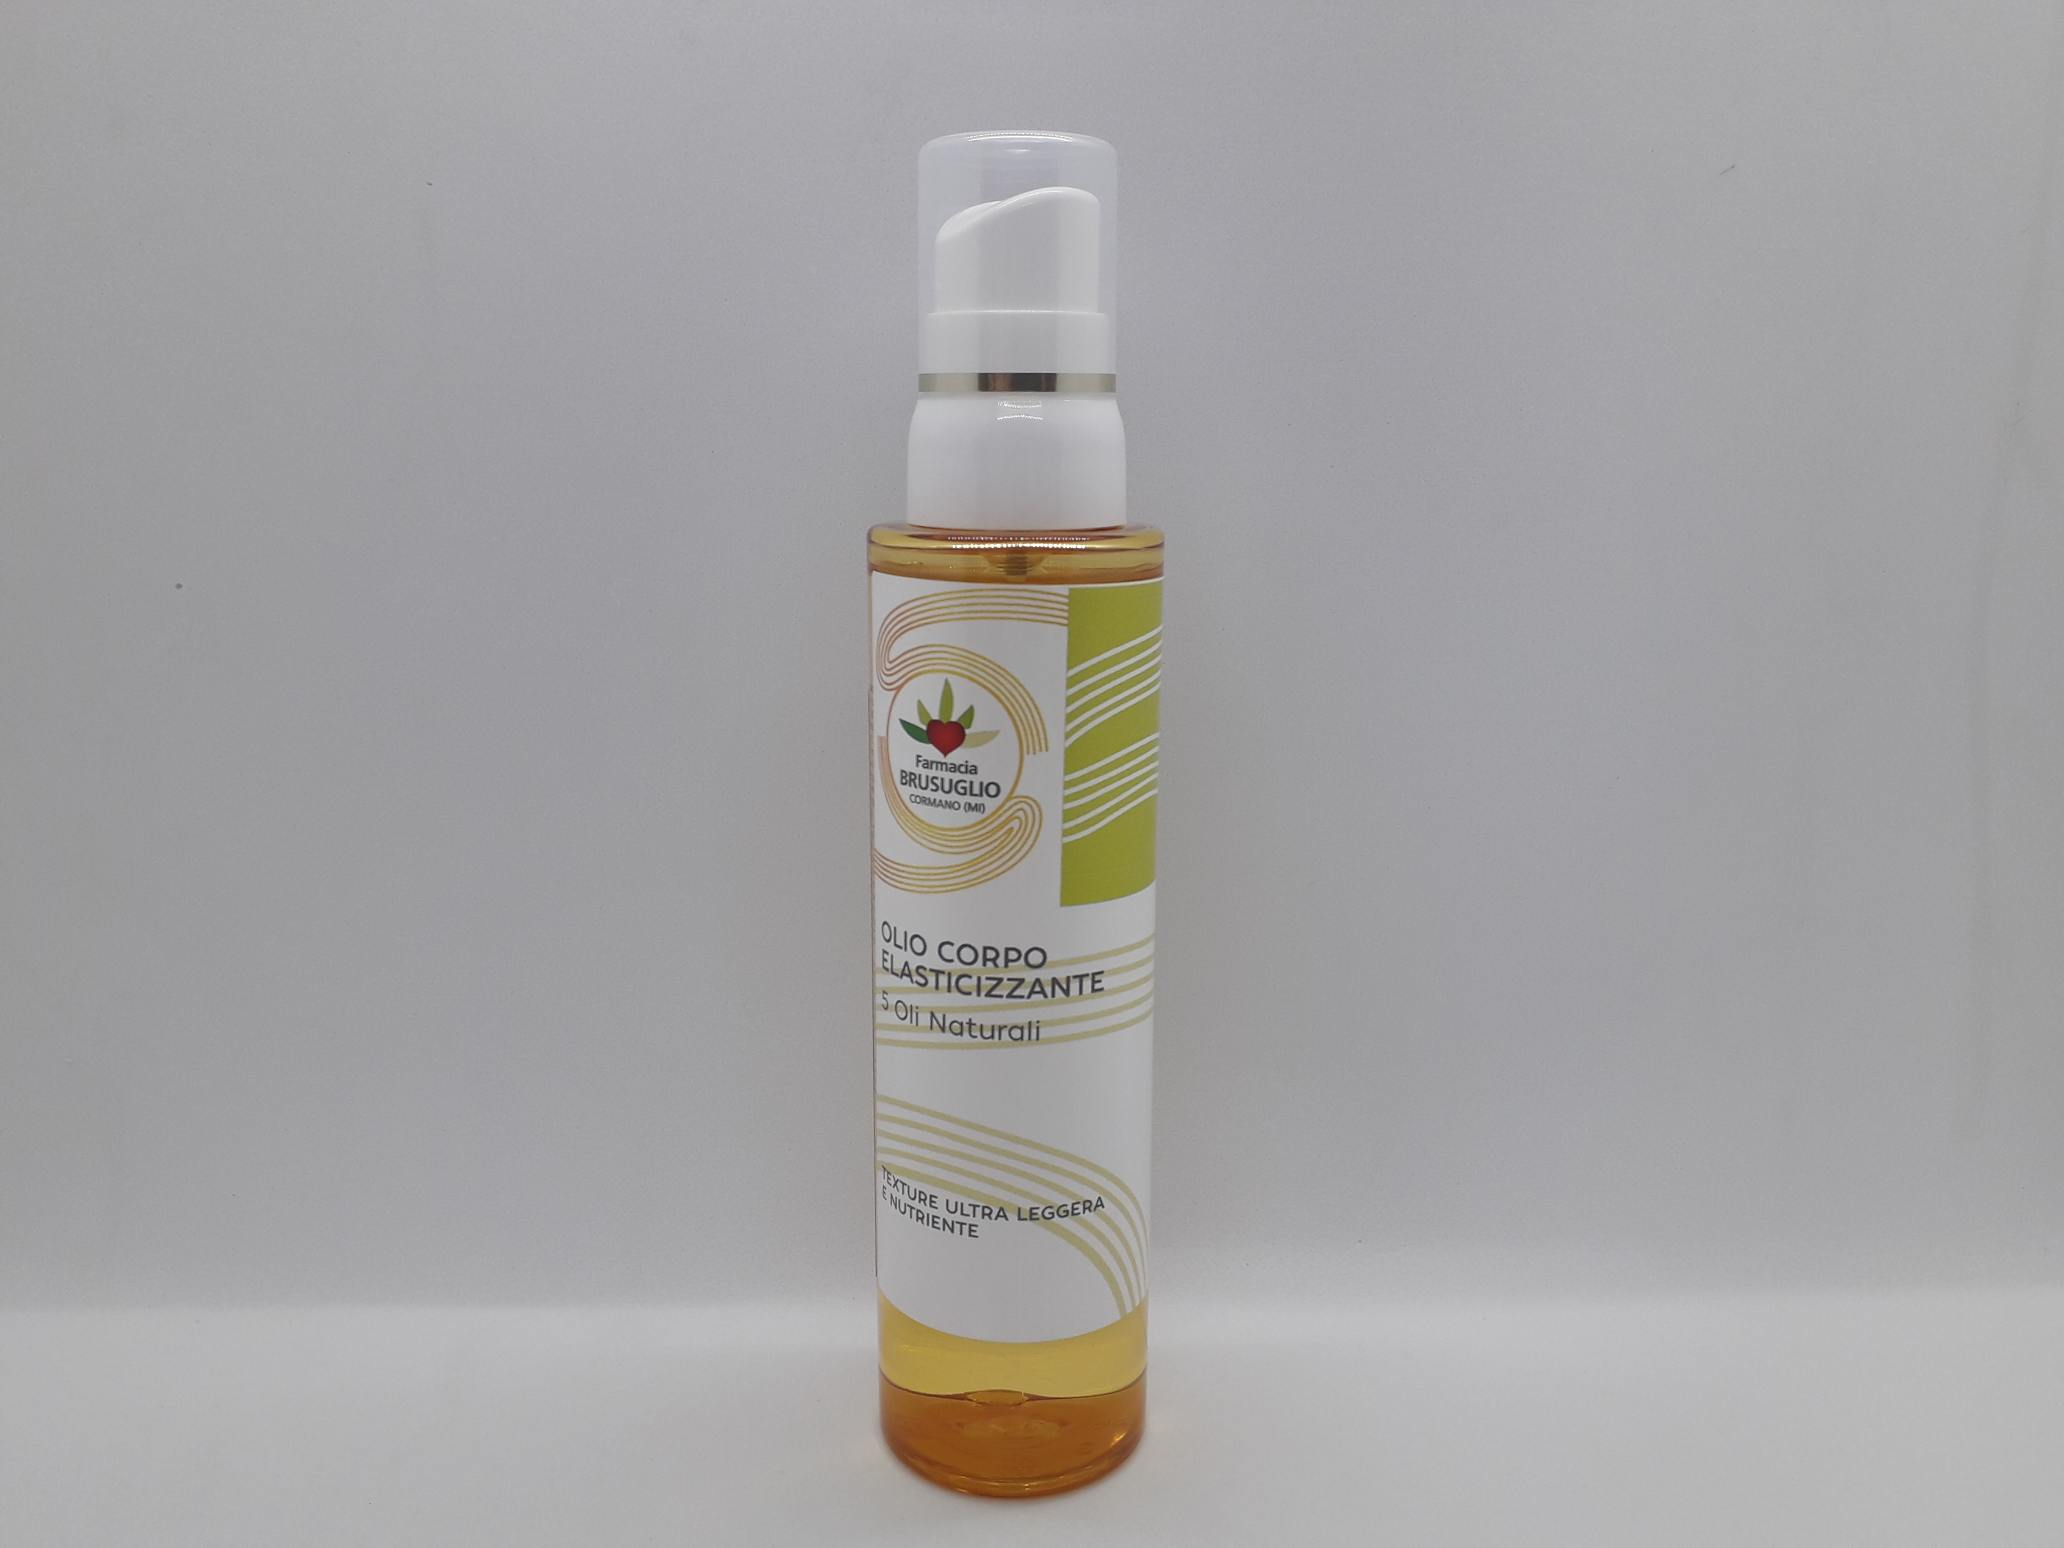 LFP OLIO CORPO ELASTICIZZANTE 150 ML - Farmaciaempatica.it